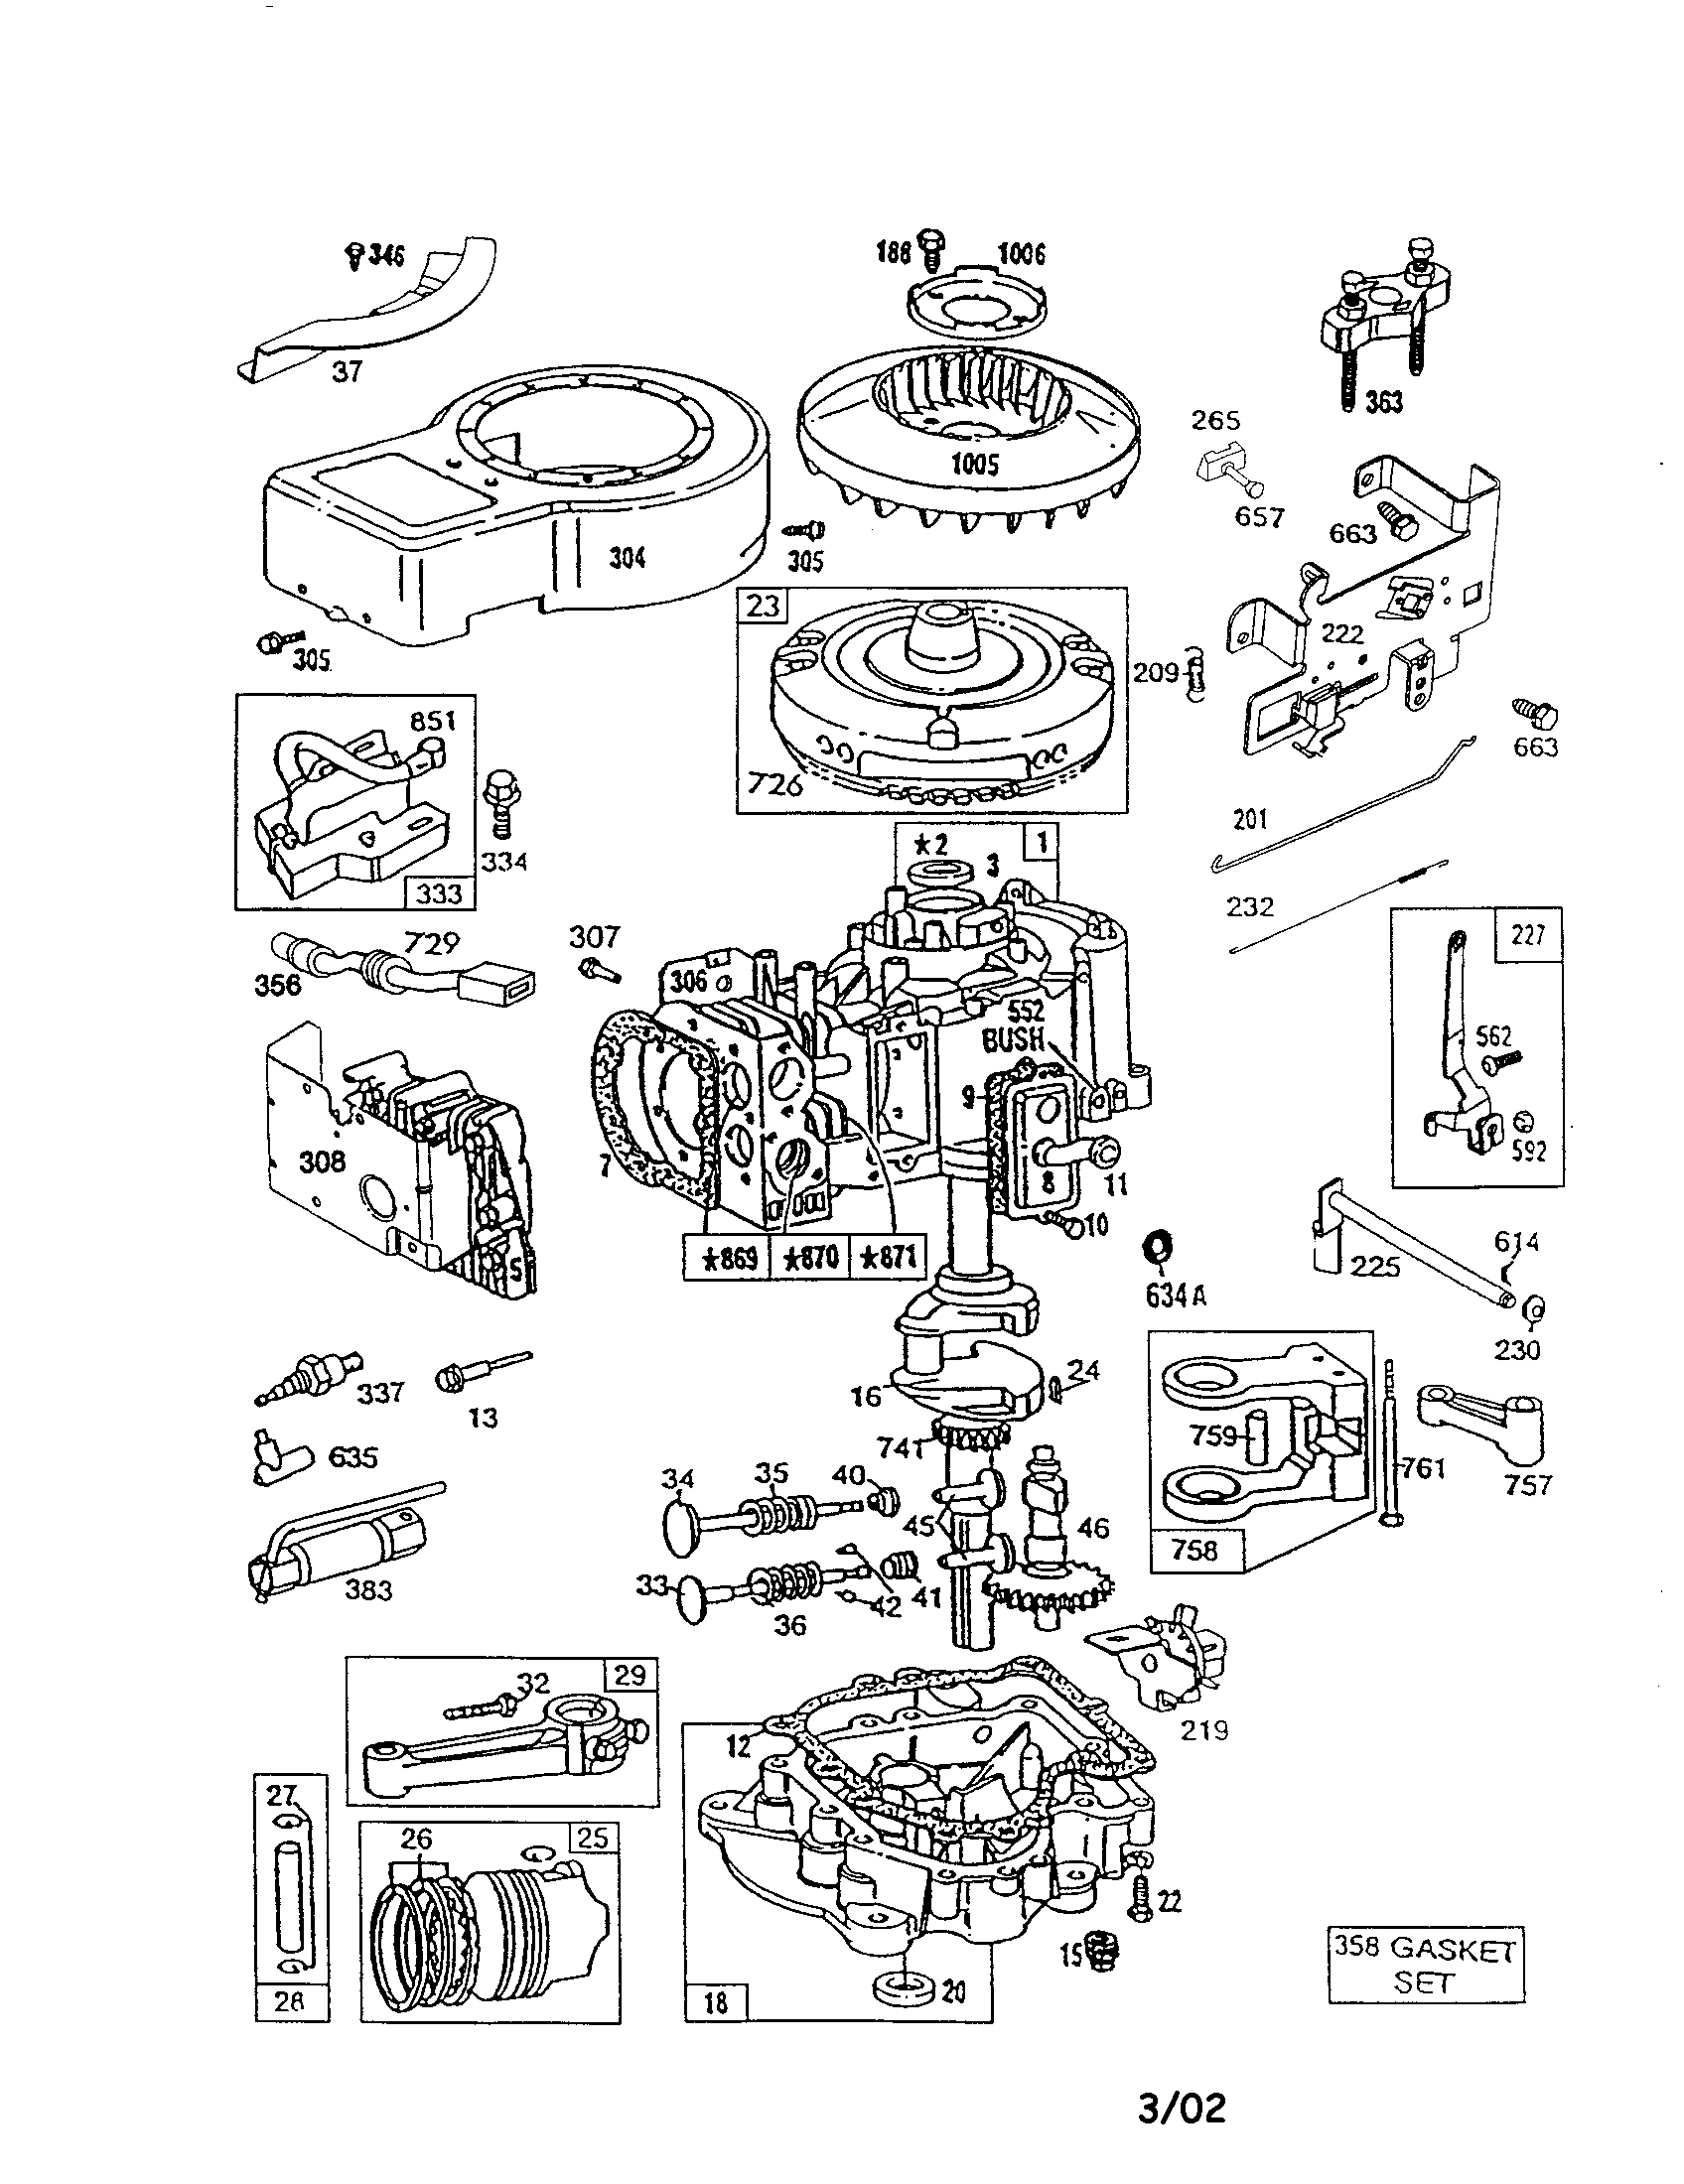 Briggs And Stratton 550ex Parts Diagram